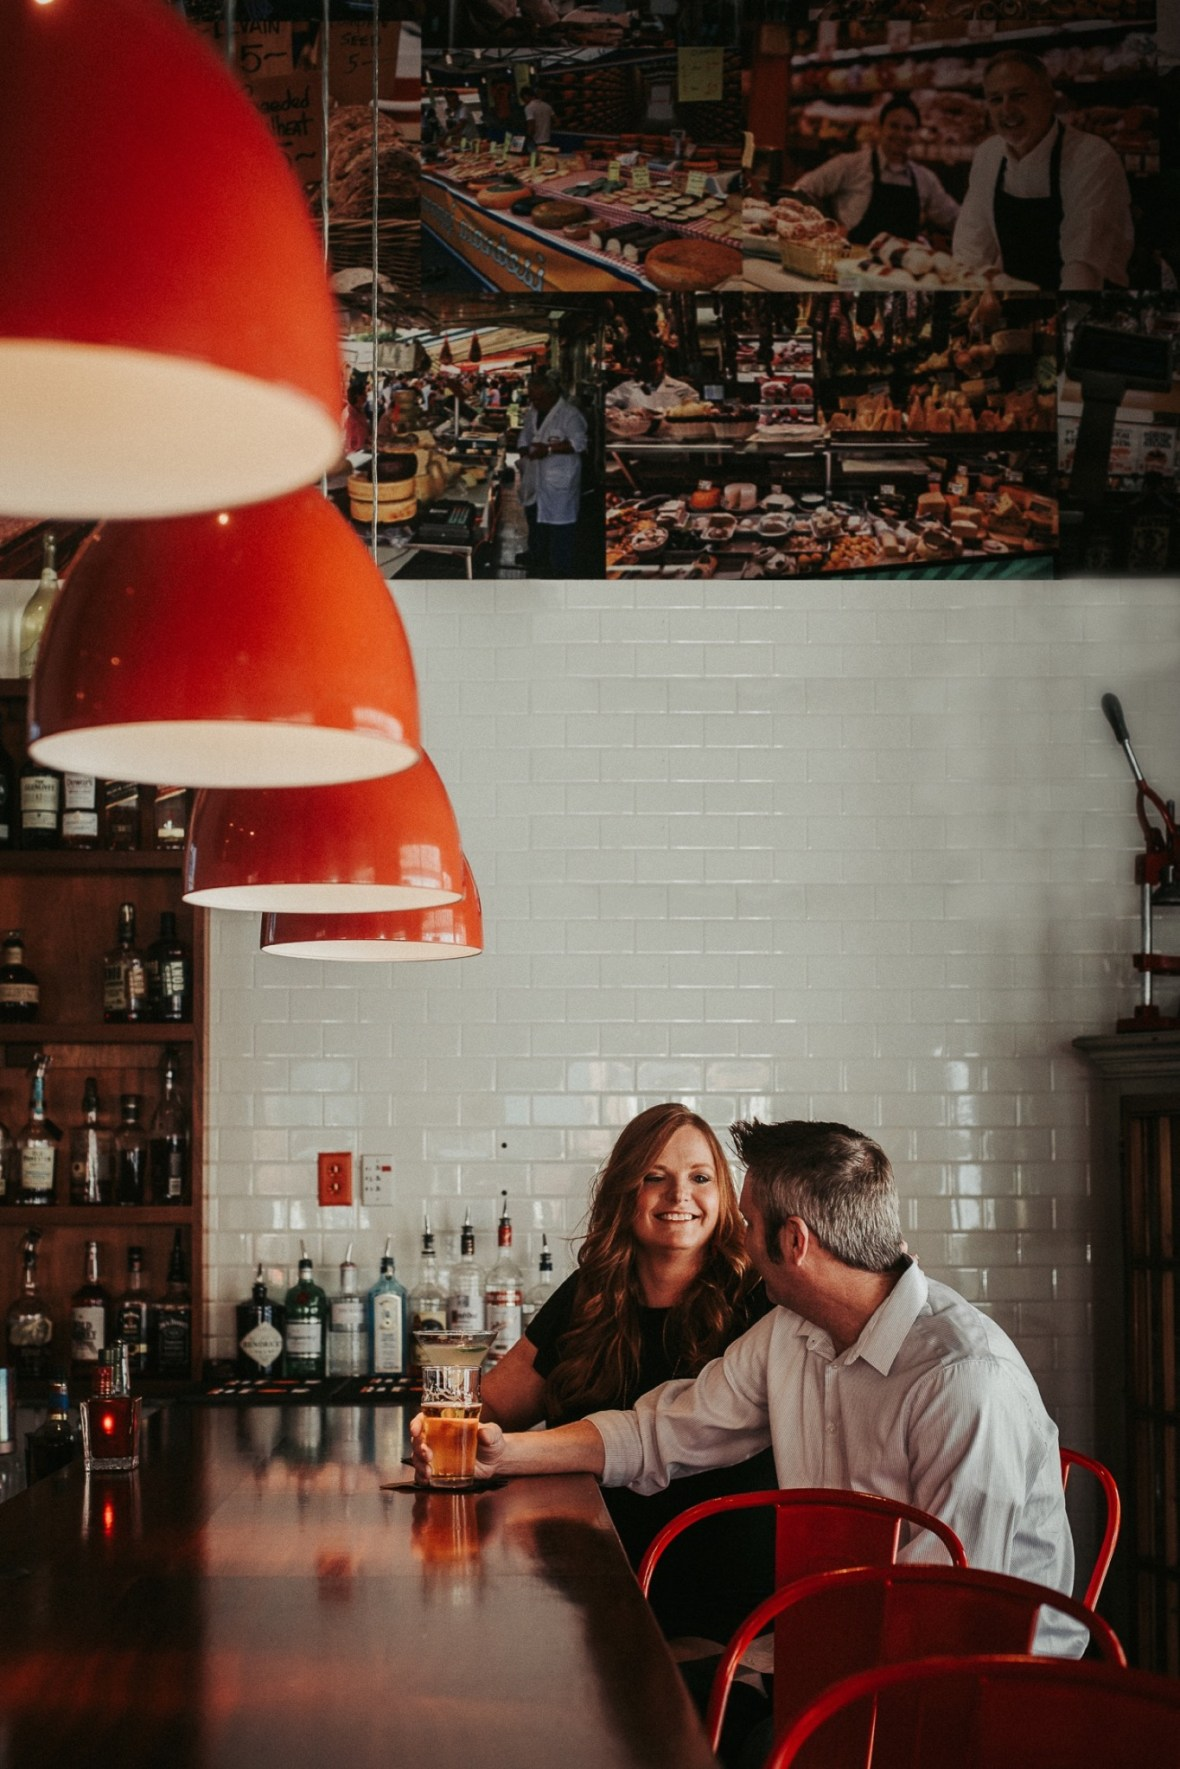 06_WTCM8895-Editab_Indoor_Louisville_Spring_Norton_Session_Commons_Engagement_Kentucky_Martinis_Champagne_Beer